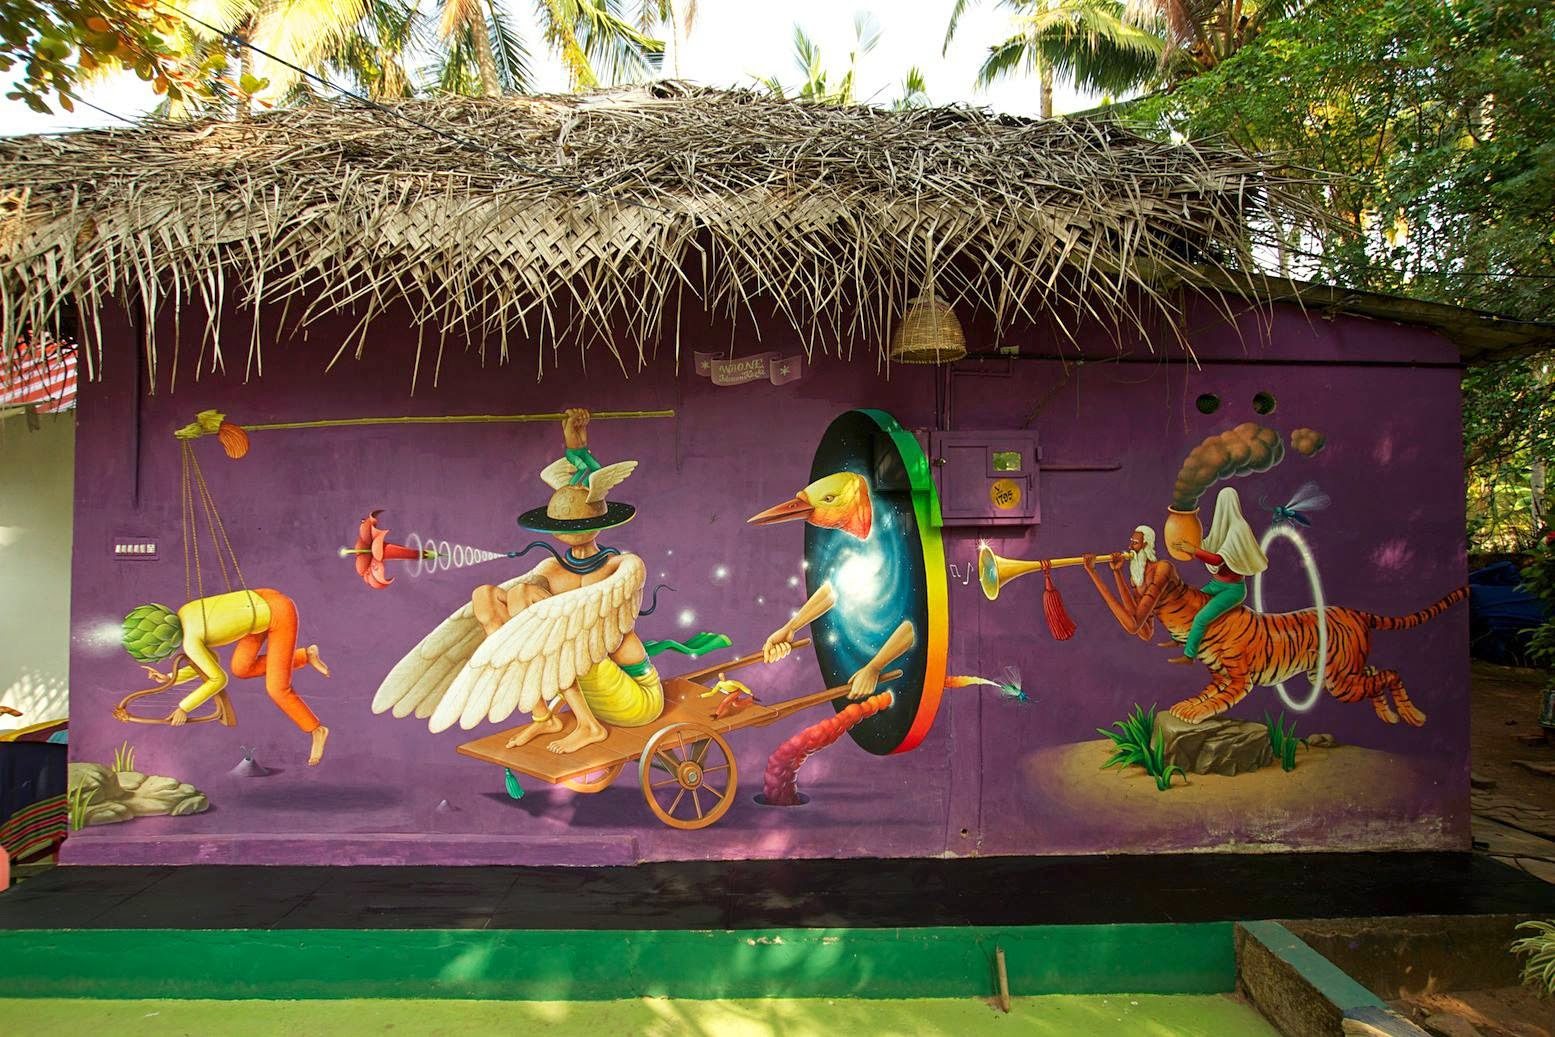 Waone from Interesni Kazki paints a new mural in Varkala, India